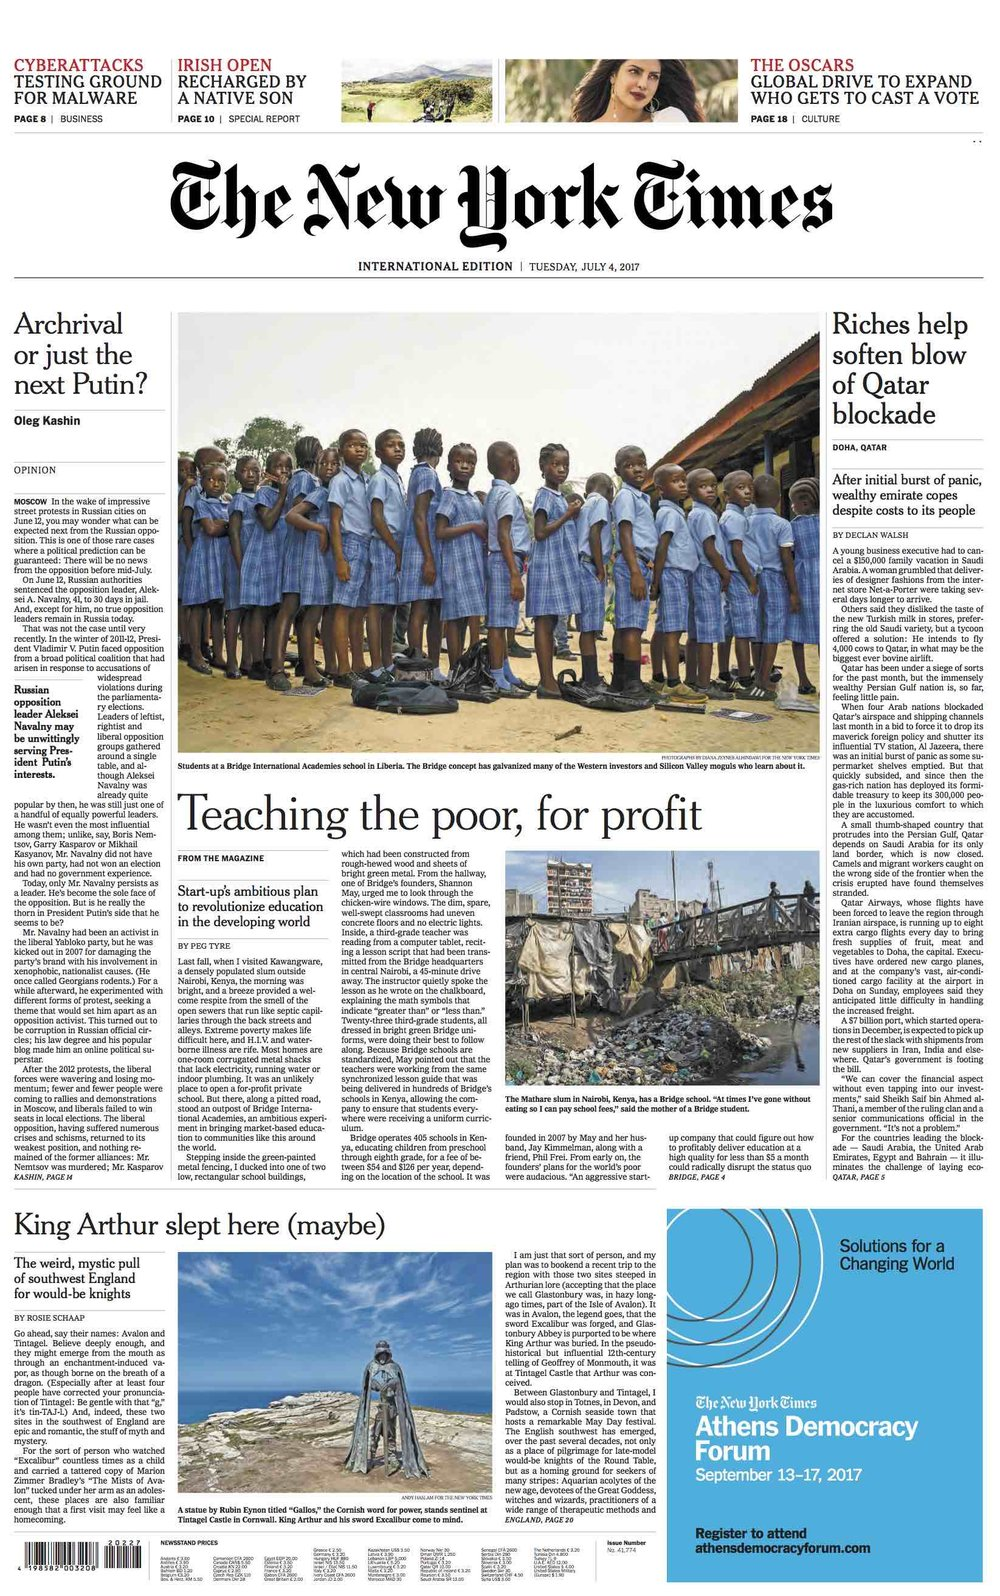 CLICK on title for online version     Teaching the poor, for profit  | The New York Times, International edition, pages 1, 4, 6 and 7, Jul 4, 2017